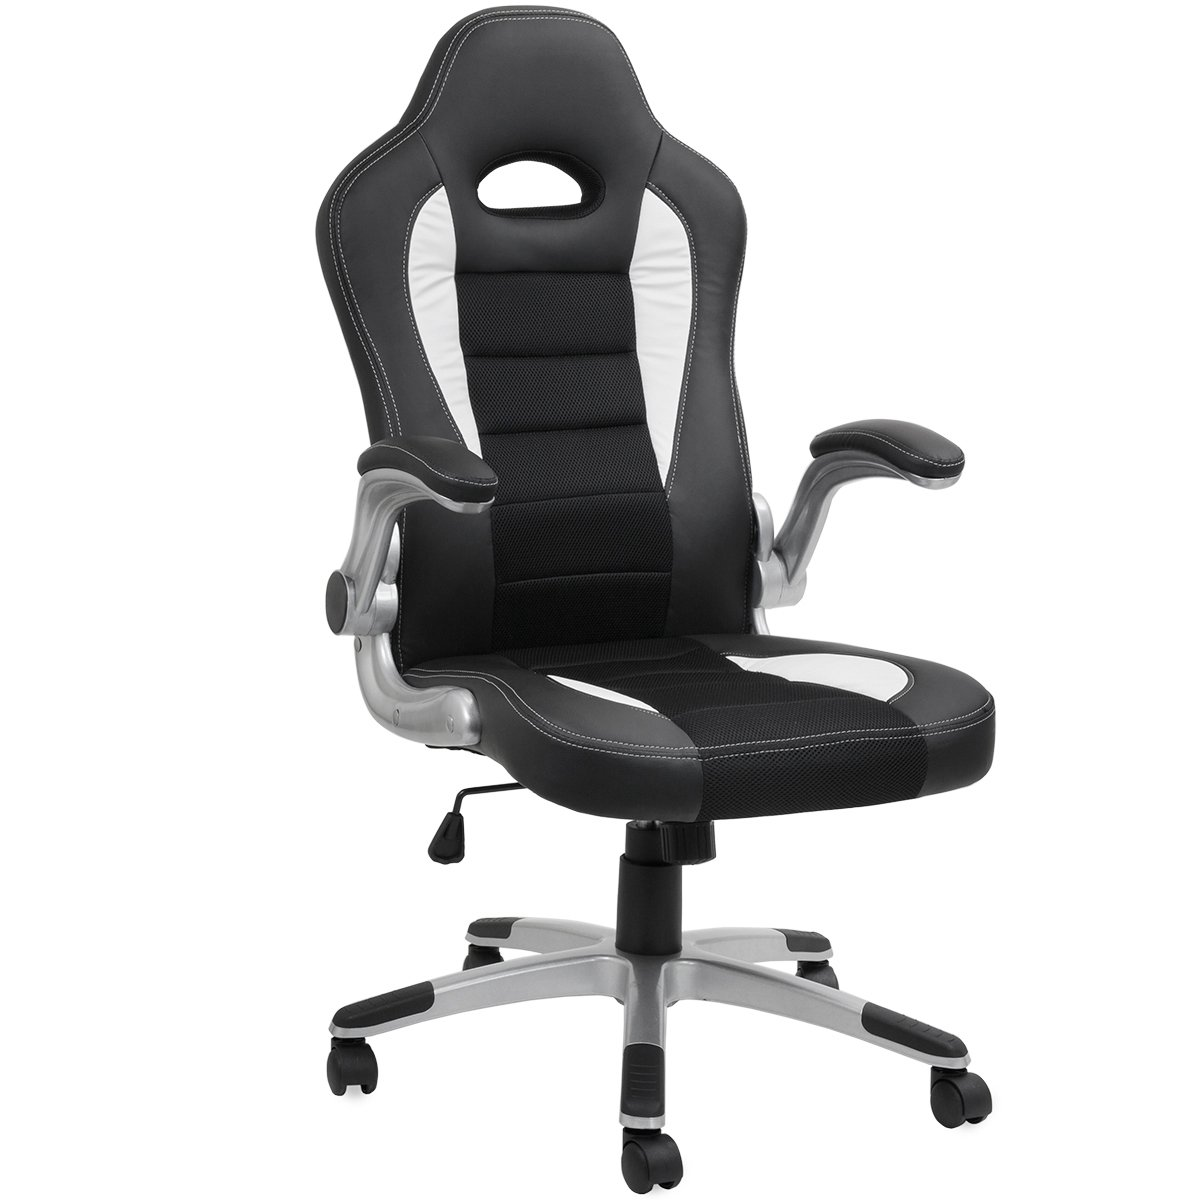 Barton Executive Computer Desk Chair, Racing Car Gaming Chair (Black) by Barton